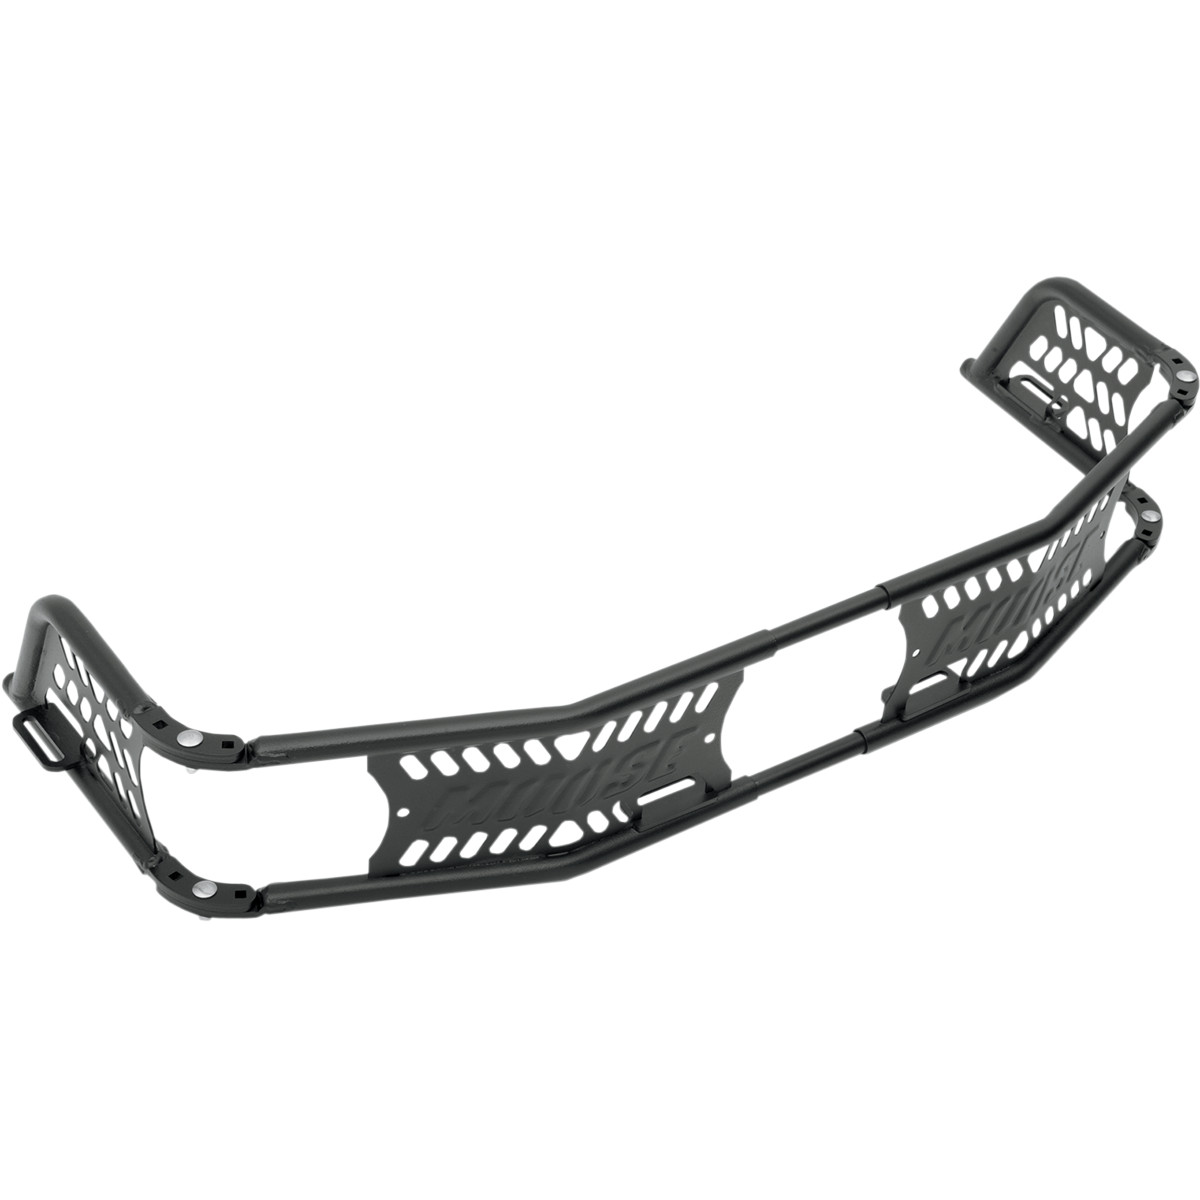 Moose Utility Adjustable Rack Extension Front Straight Fits 90-93 Polaris 4x4 400L